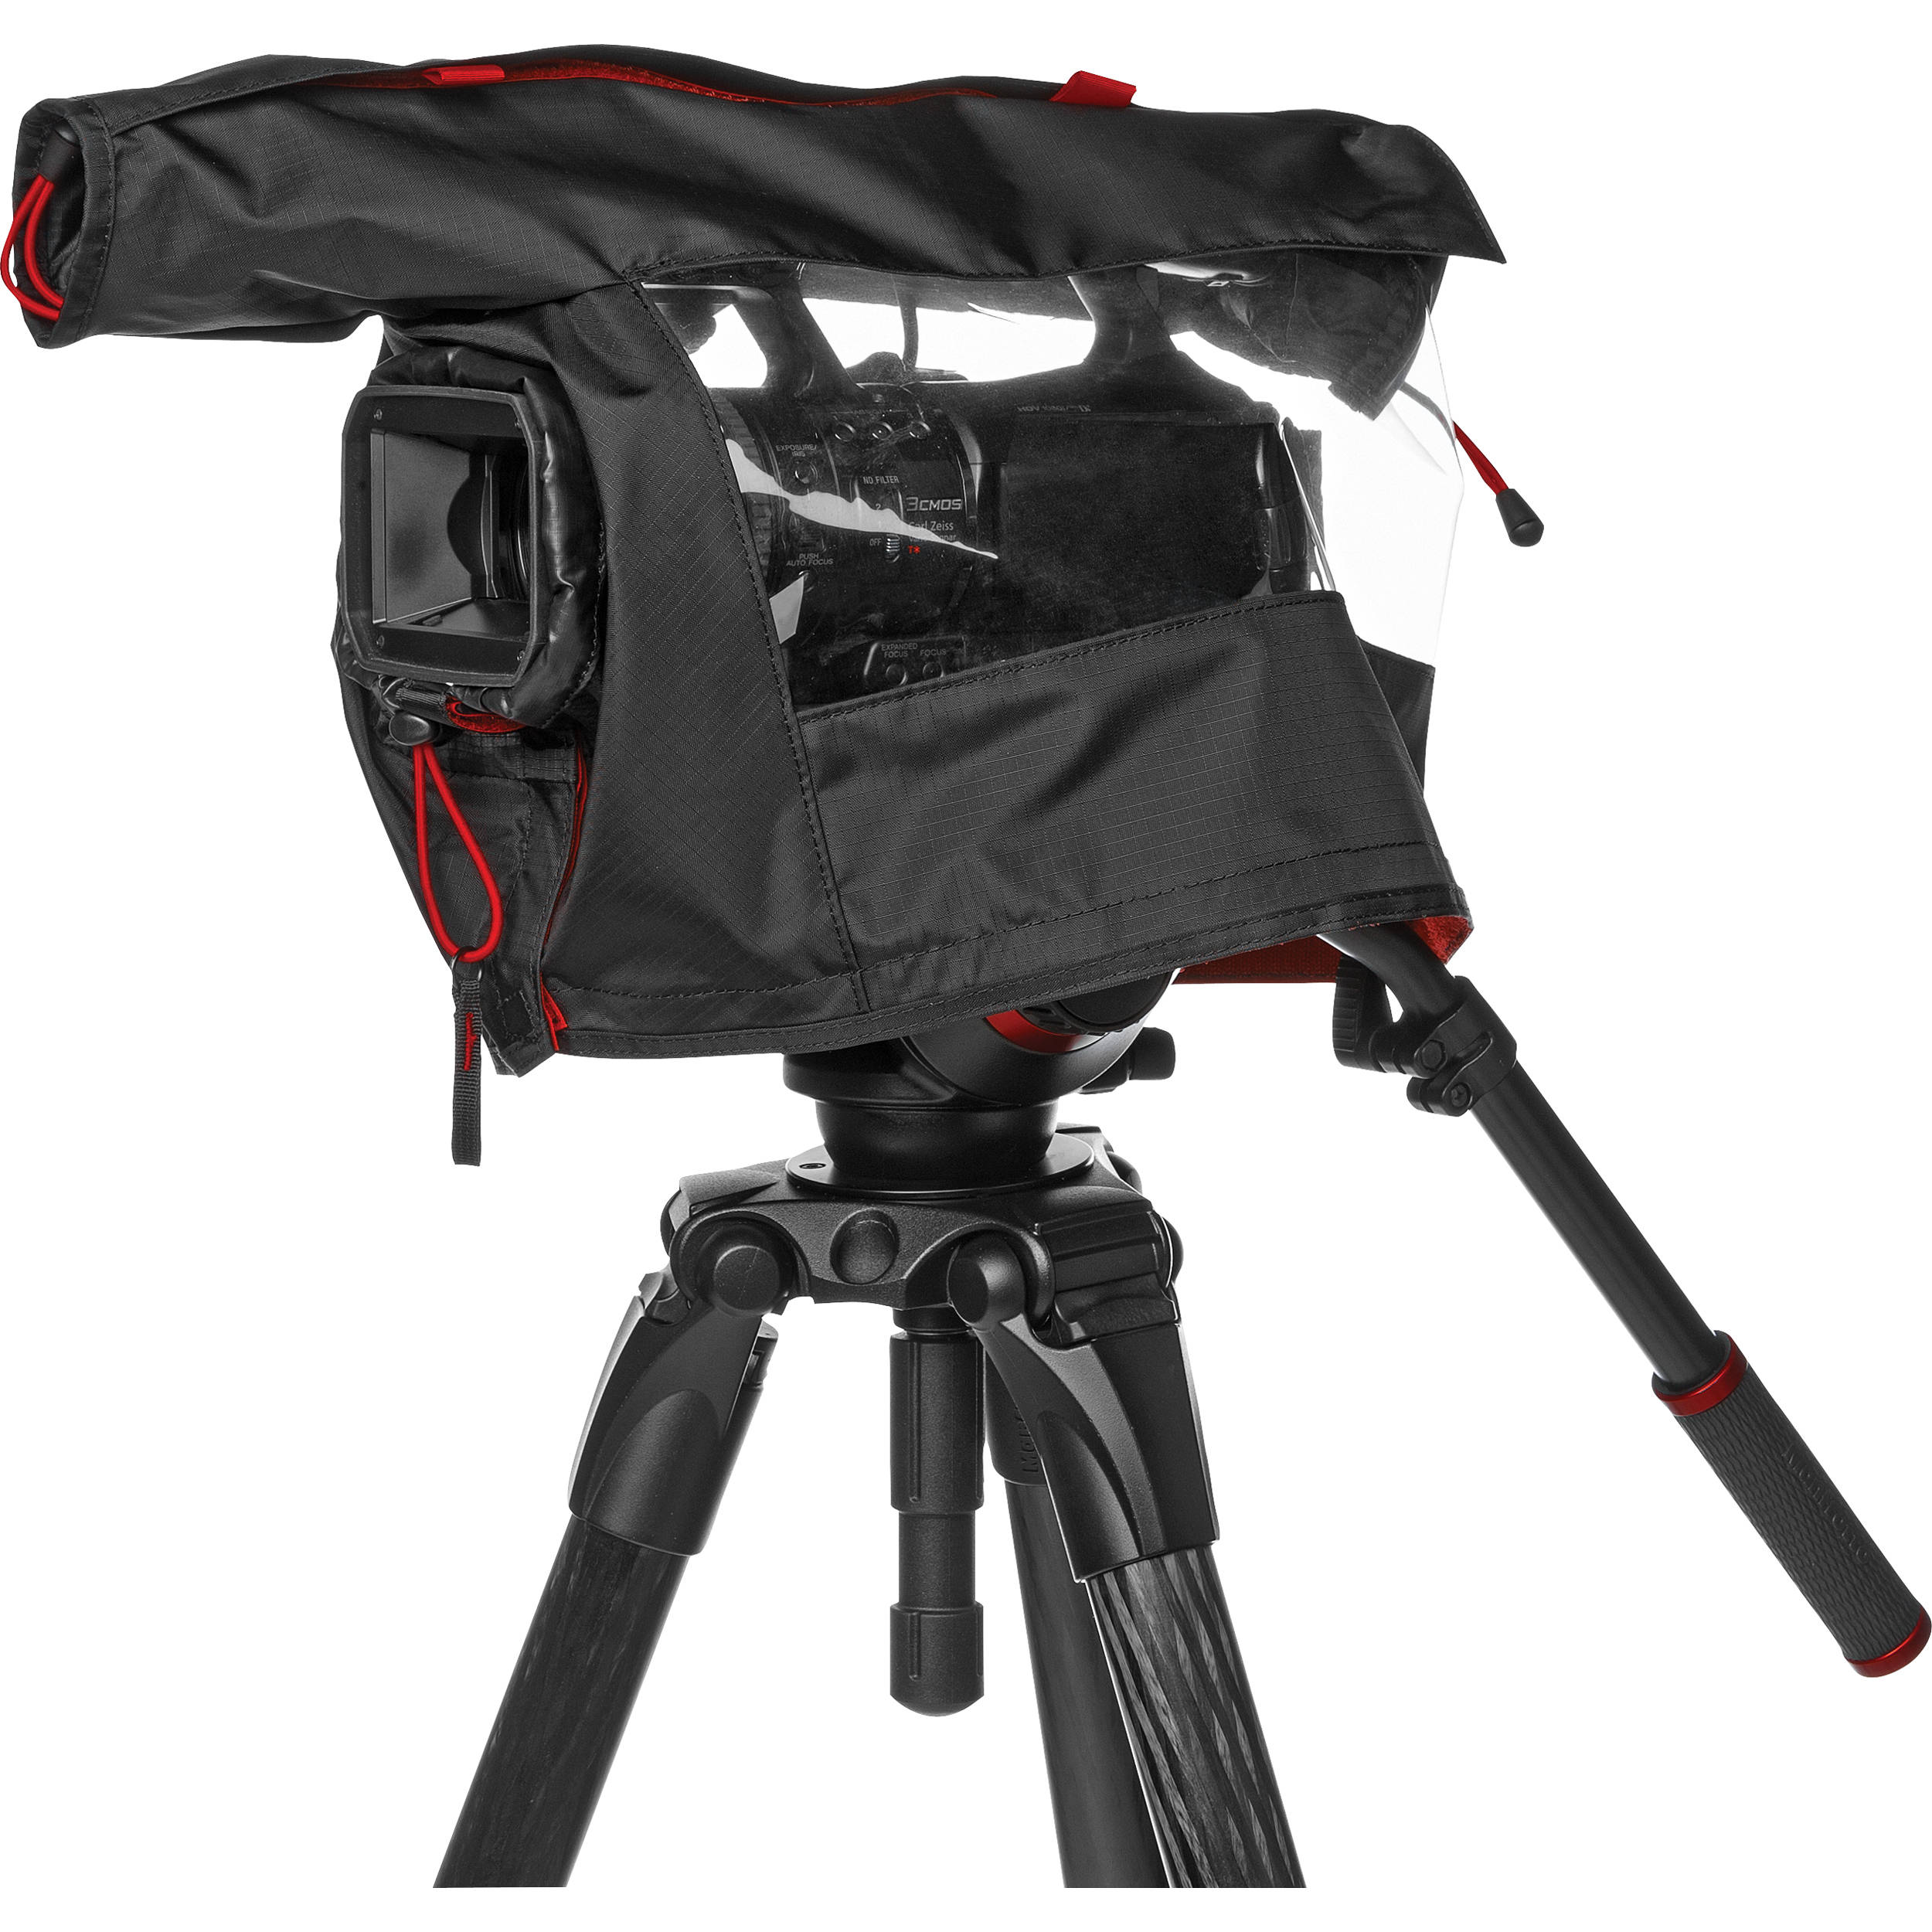 Manfrotto Crc 14 Pro Light Video Camera Raincover Mb Pl Crc 14